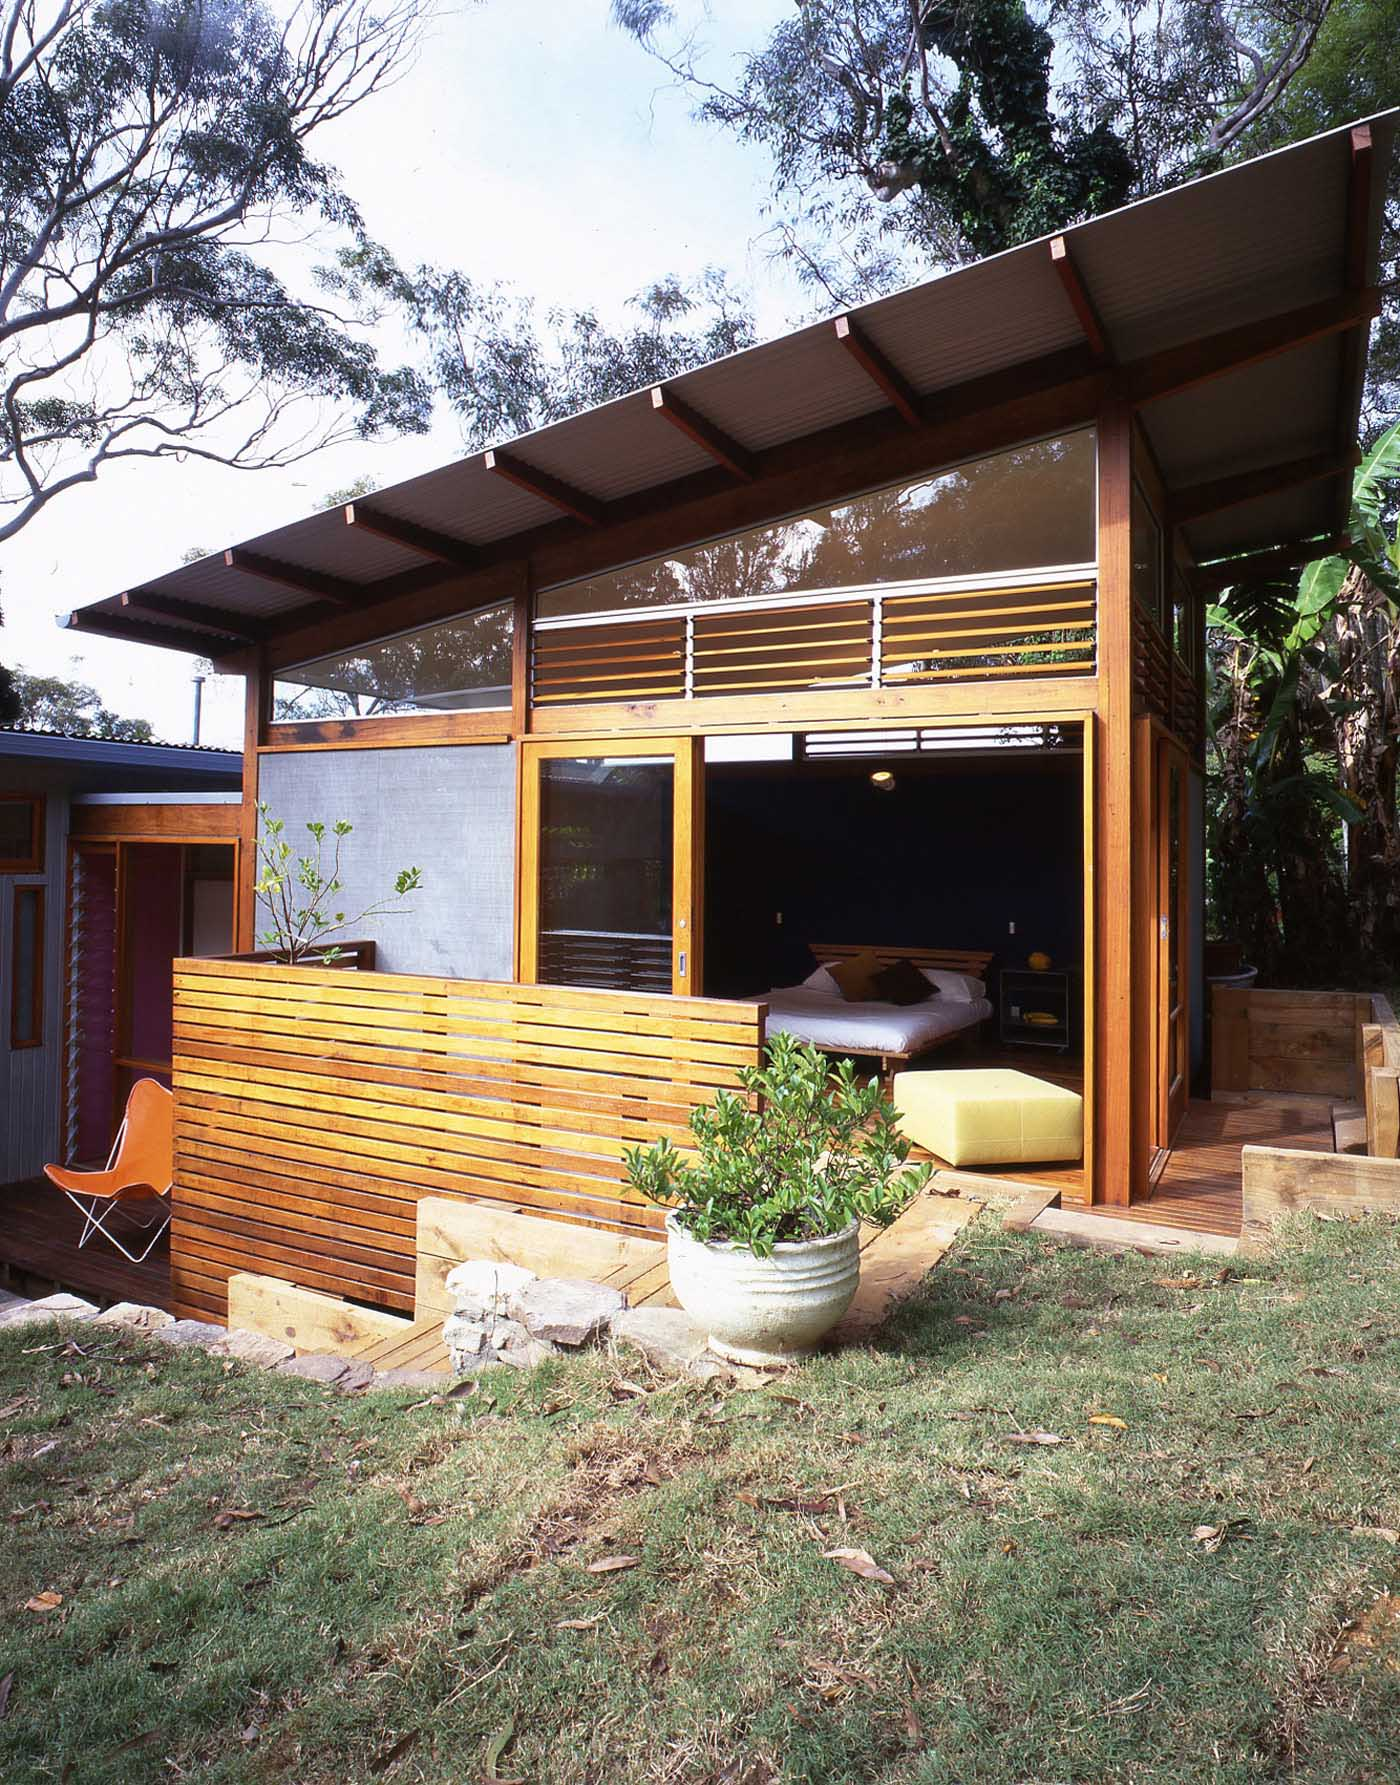 Avalon Beach House by Sydney award winning residential architecture firm Sam Crawford Architects. View from garden to timber bedroom with slanted corrugated roof